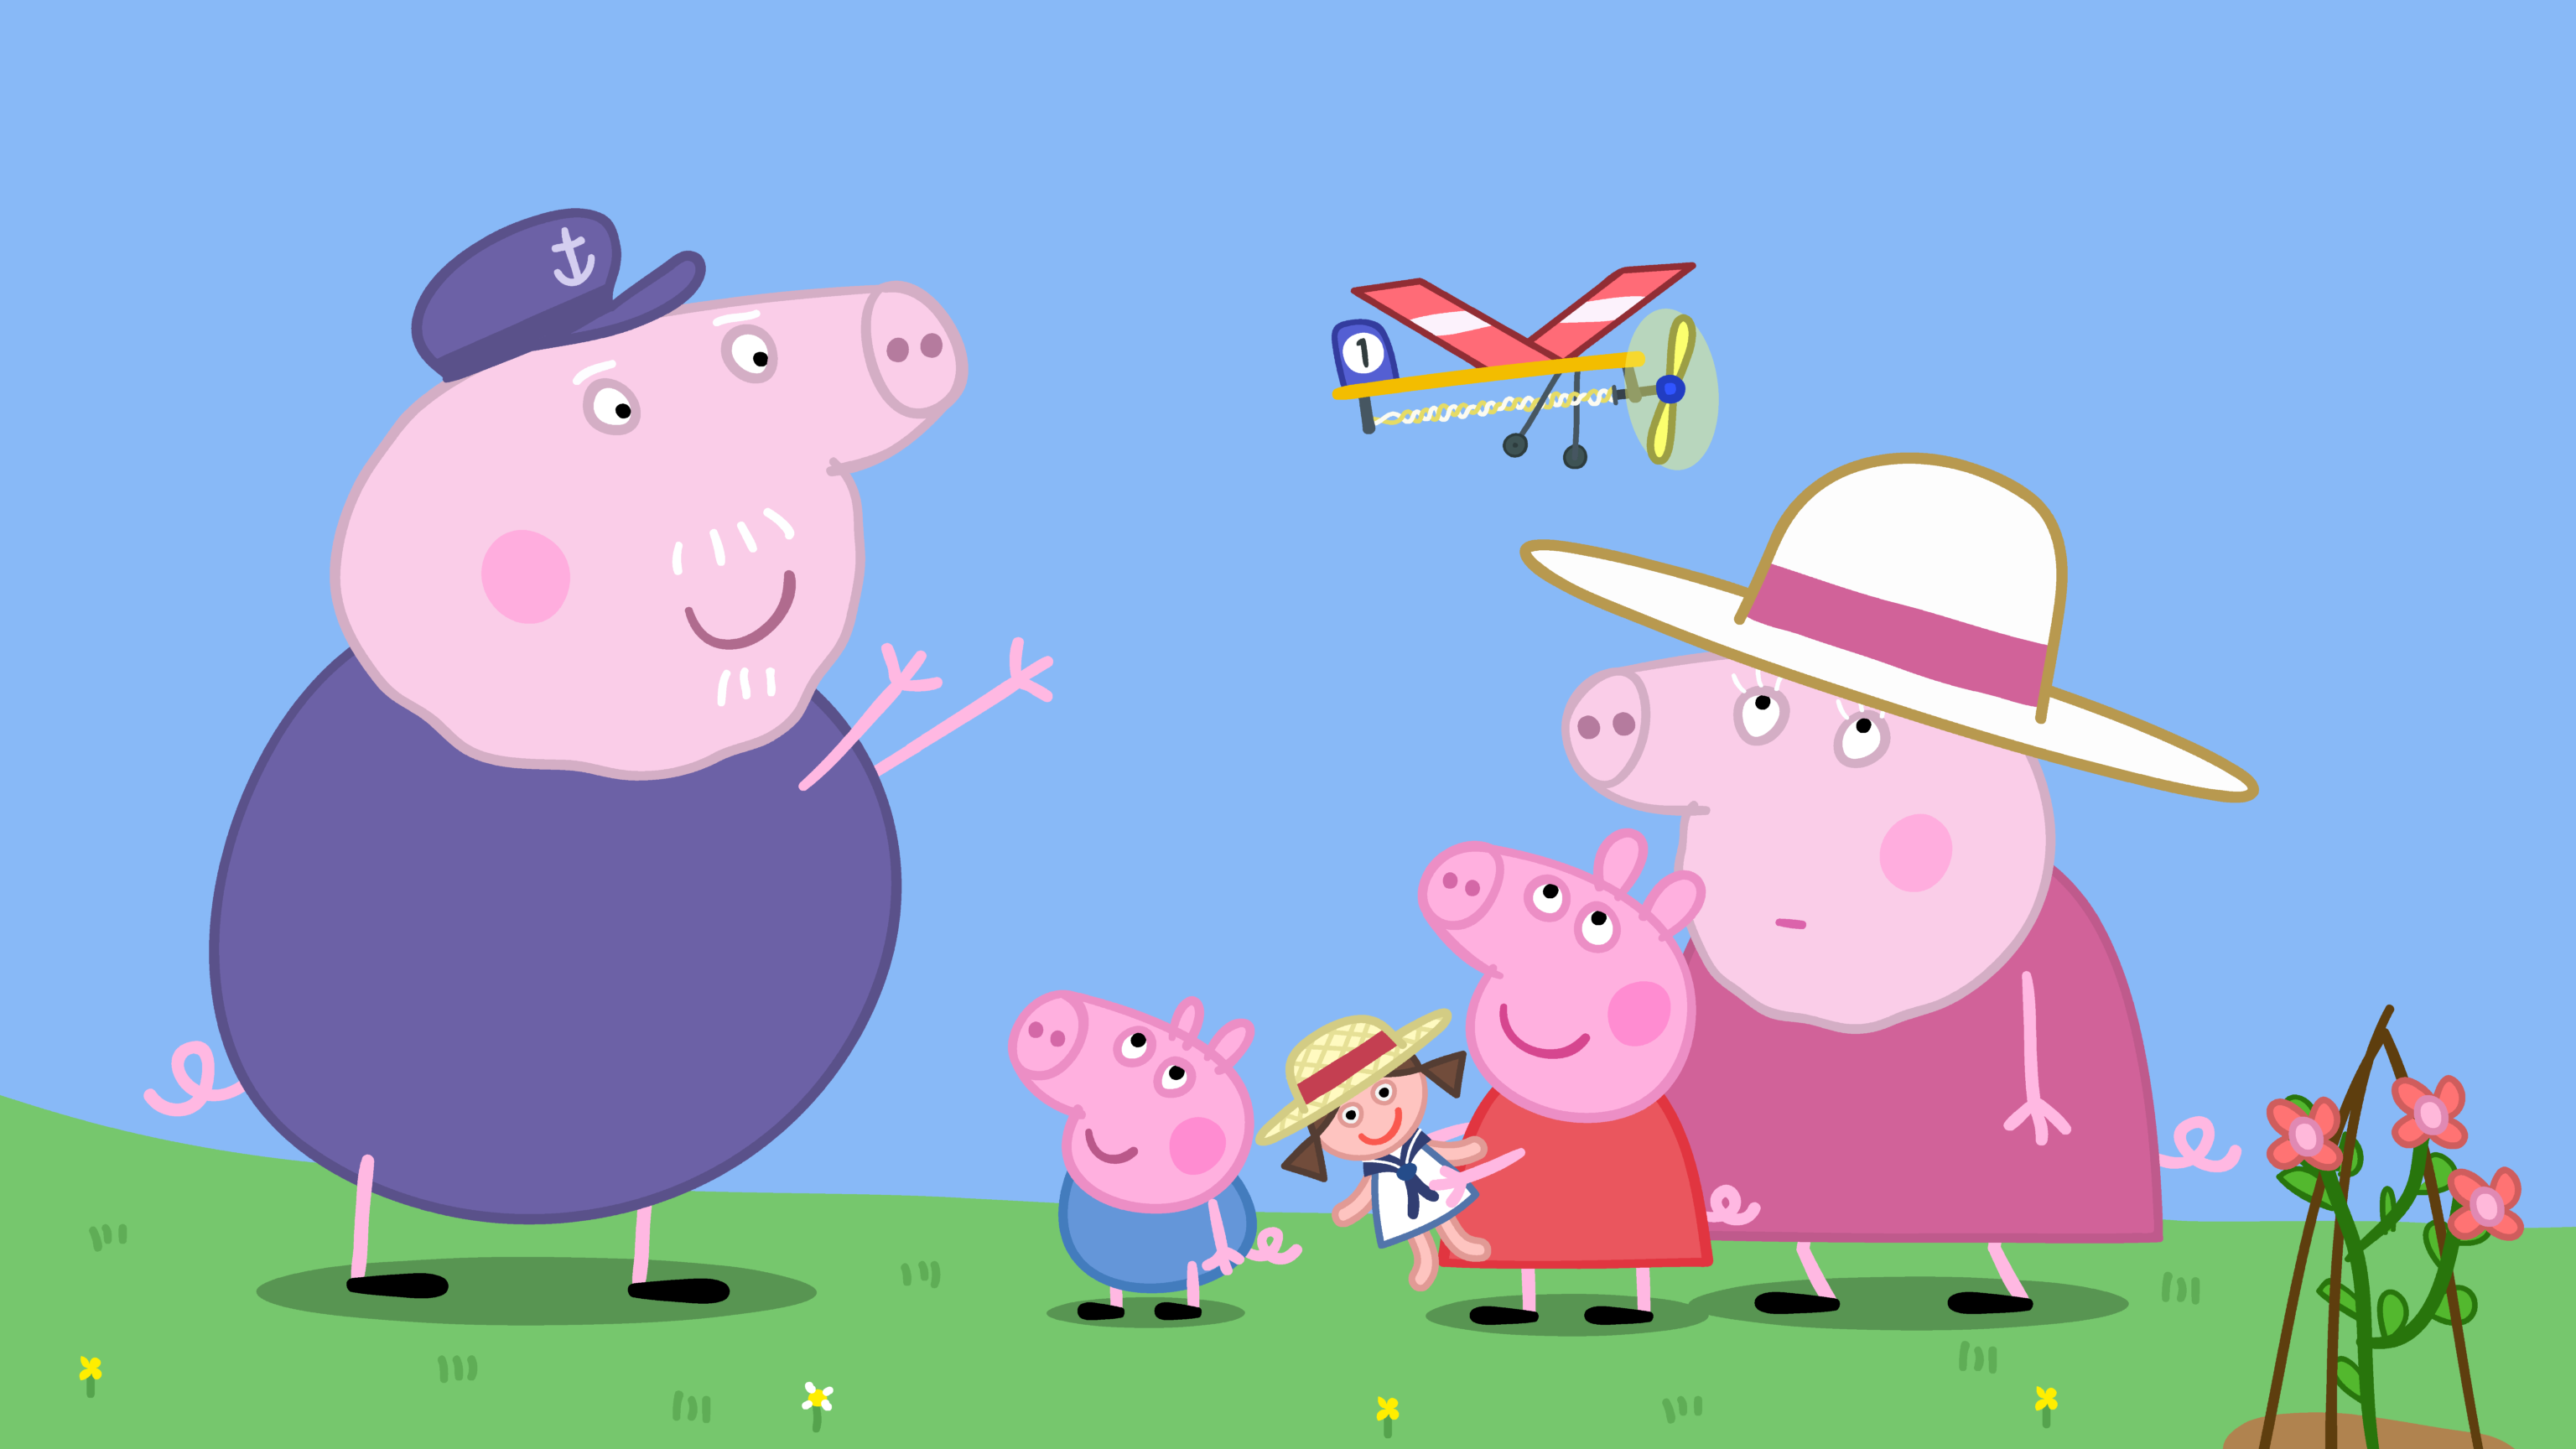 Nickelodeon's New Episodes Include Peppa Pig, Becca's Bunch | Collider